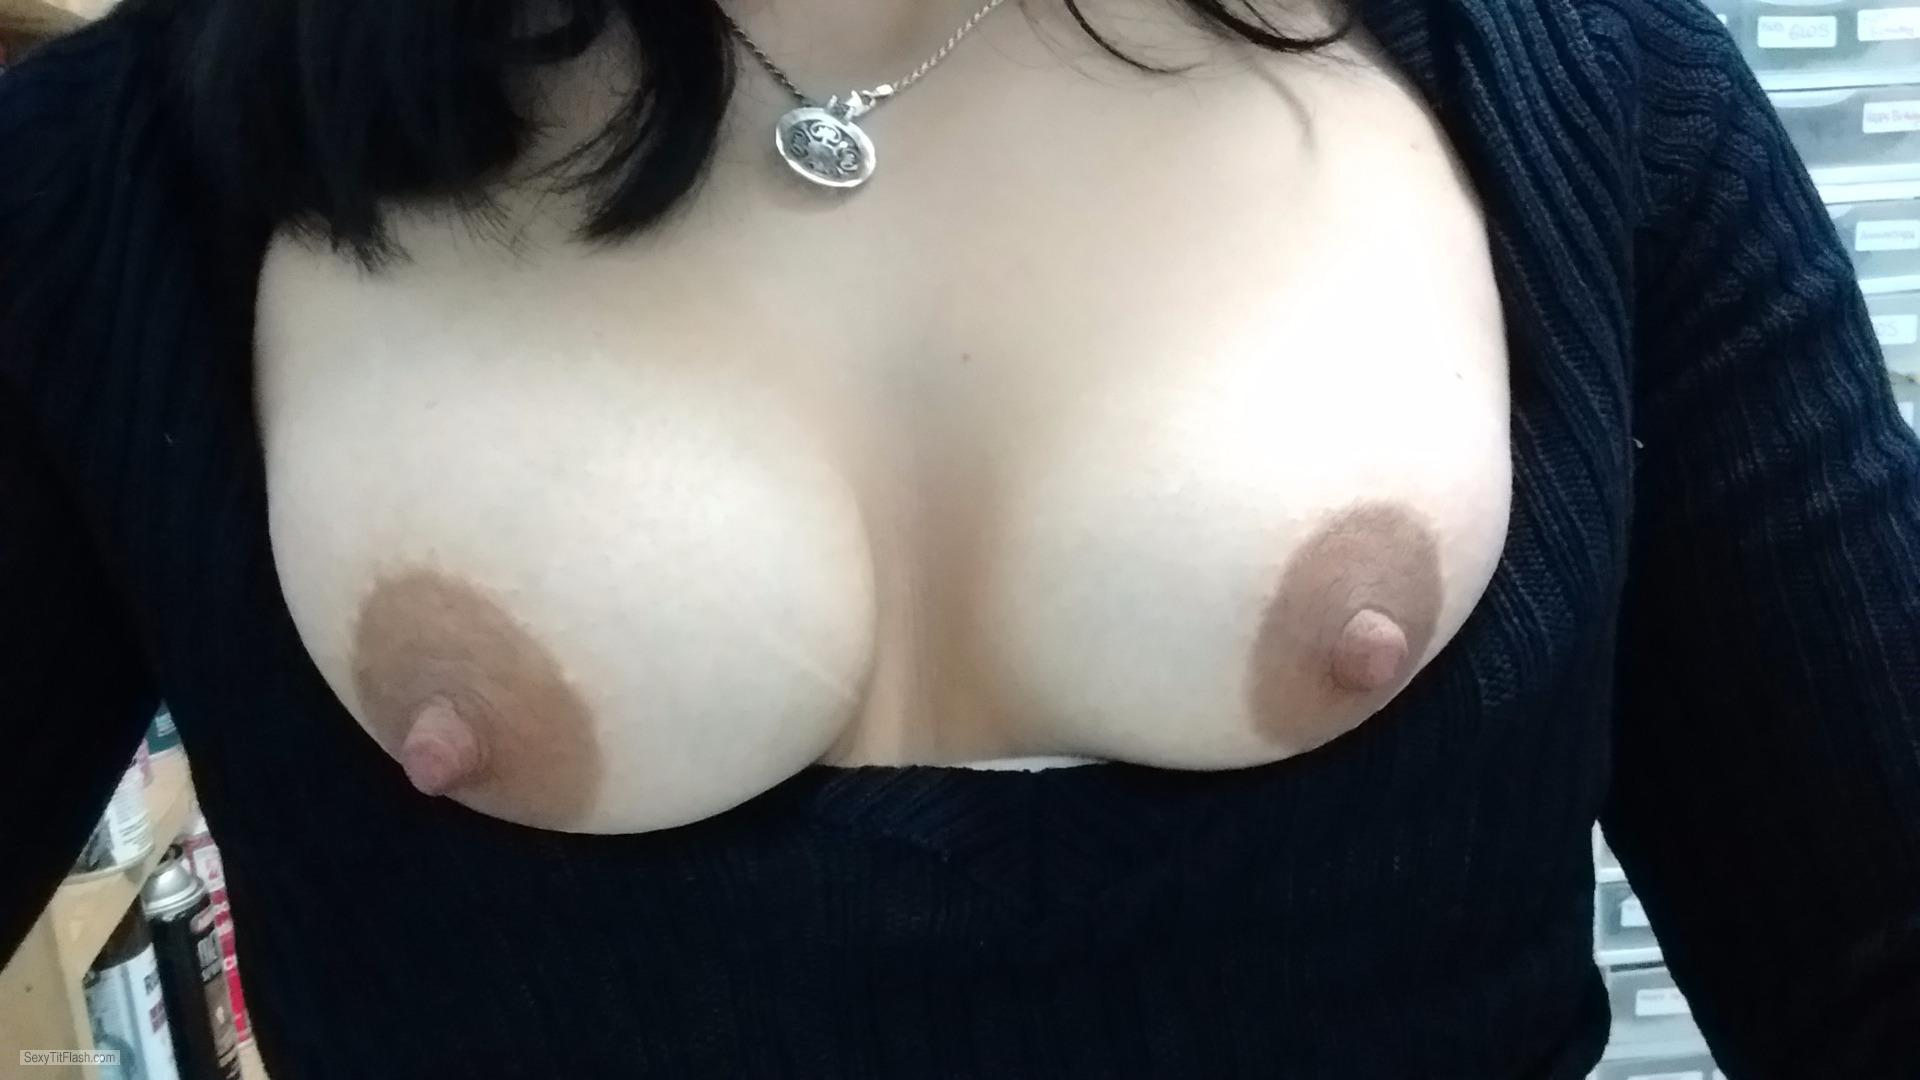 My Small Tits Selfie by Bam